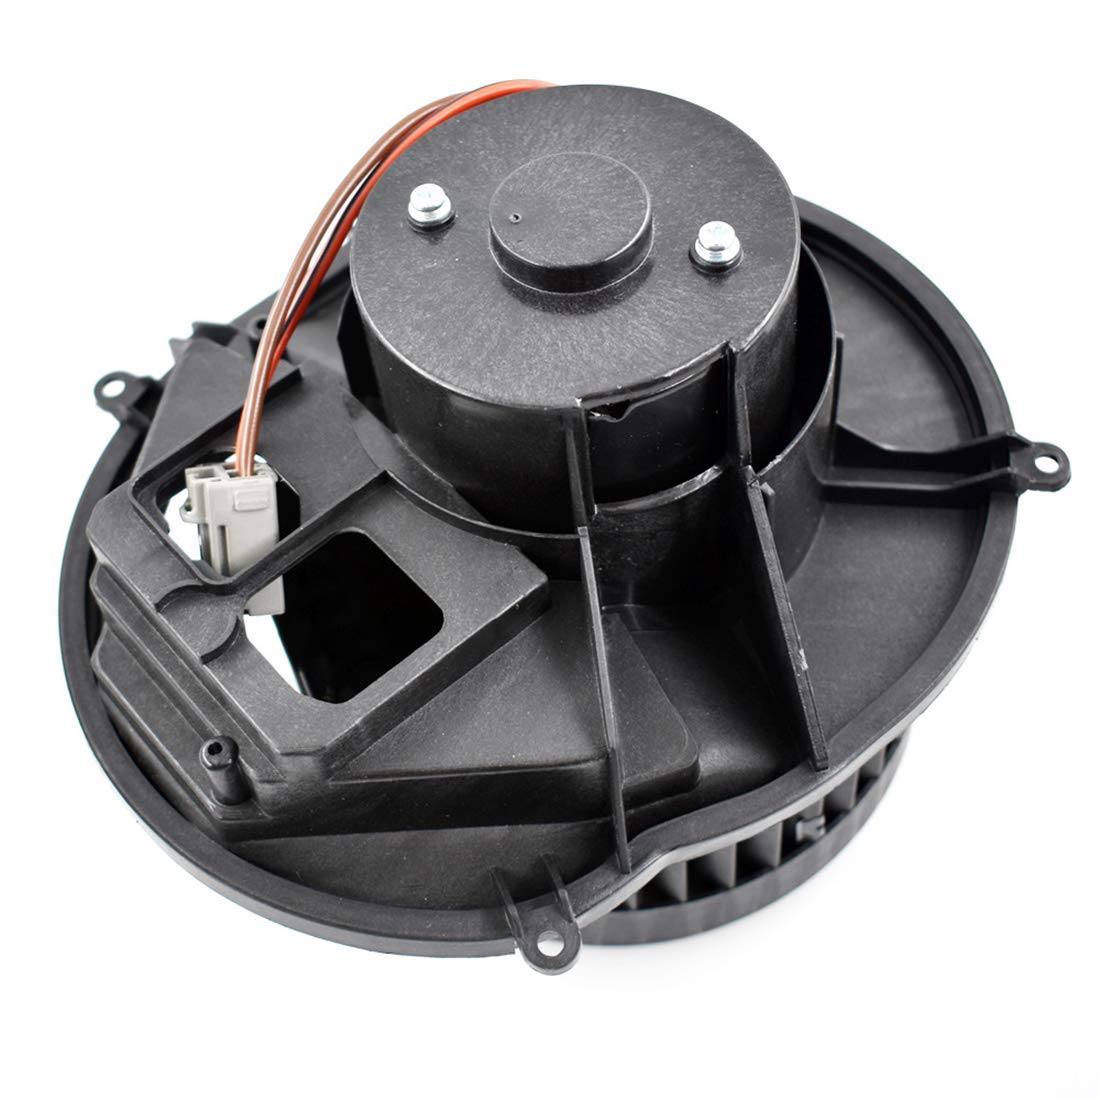 WFLNHB New A//C AC Heater Blower Motor w//Fan Cage 9171479 fit for Volvo XC70 XC90 S60 S80 V70 30715482 615-58480 700186